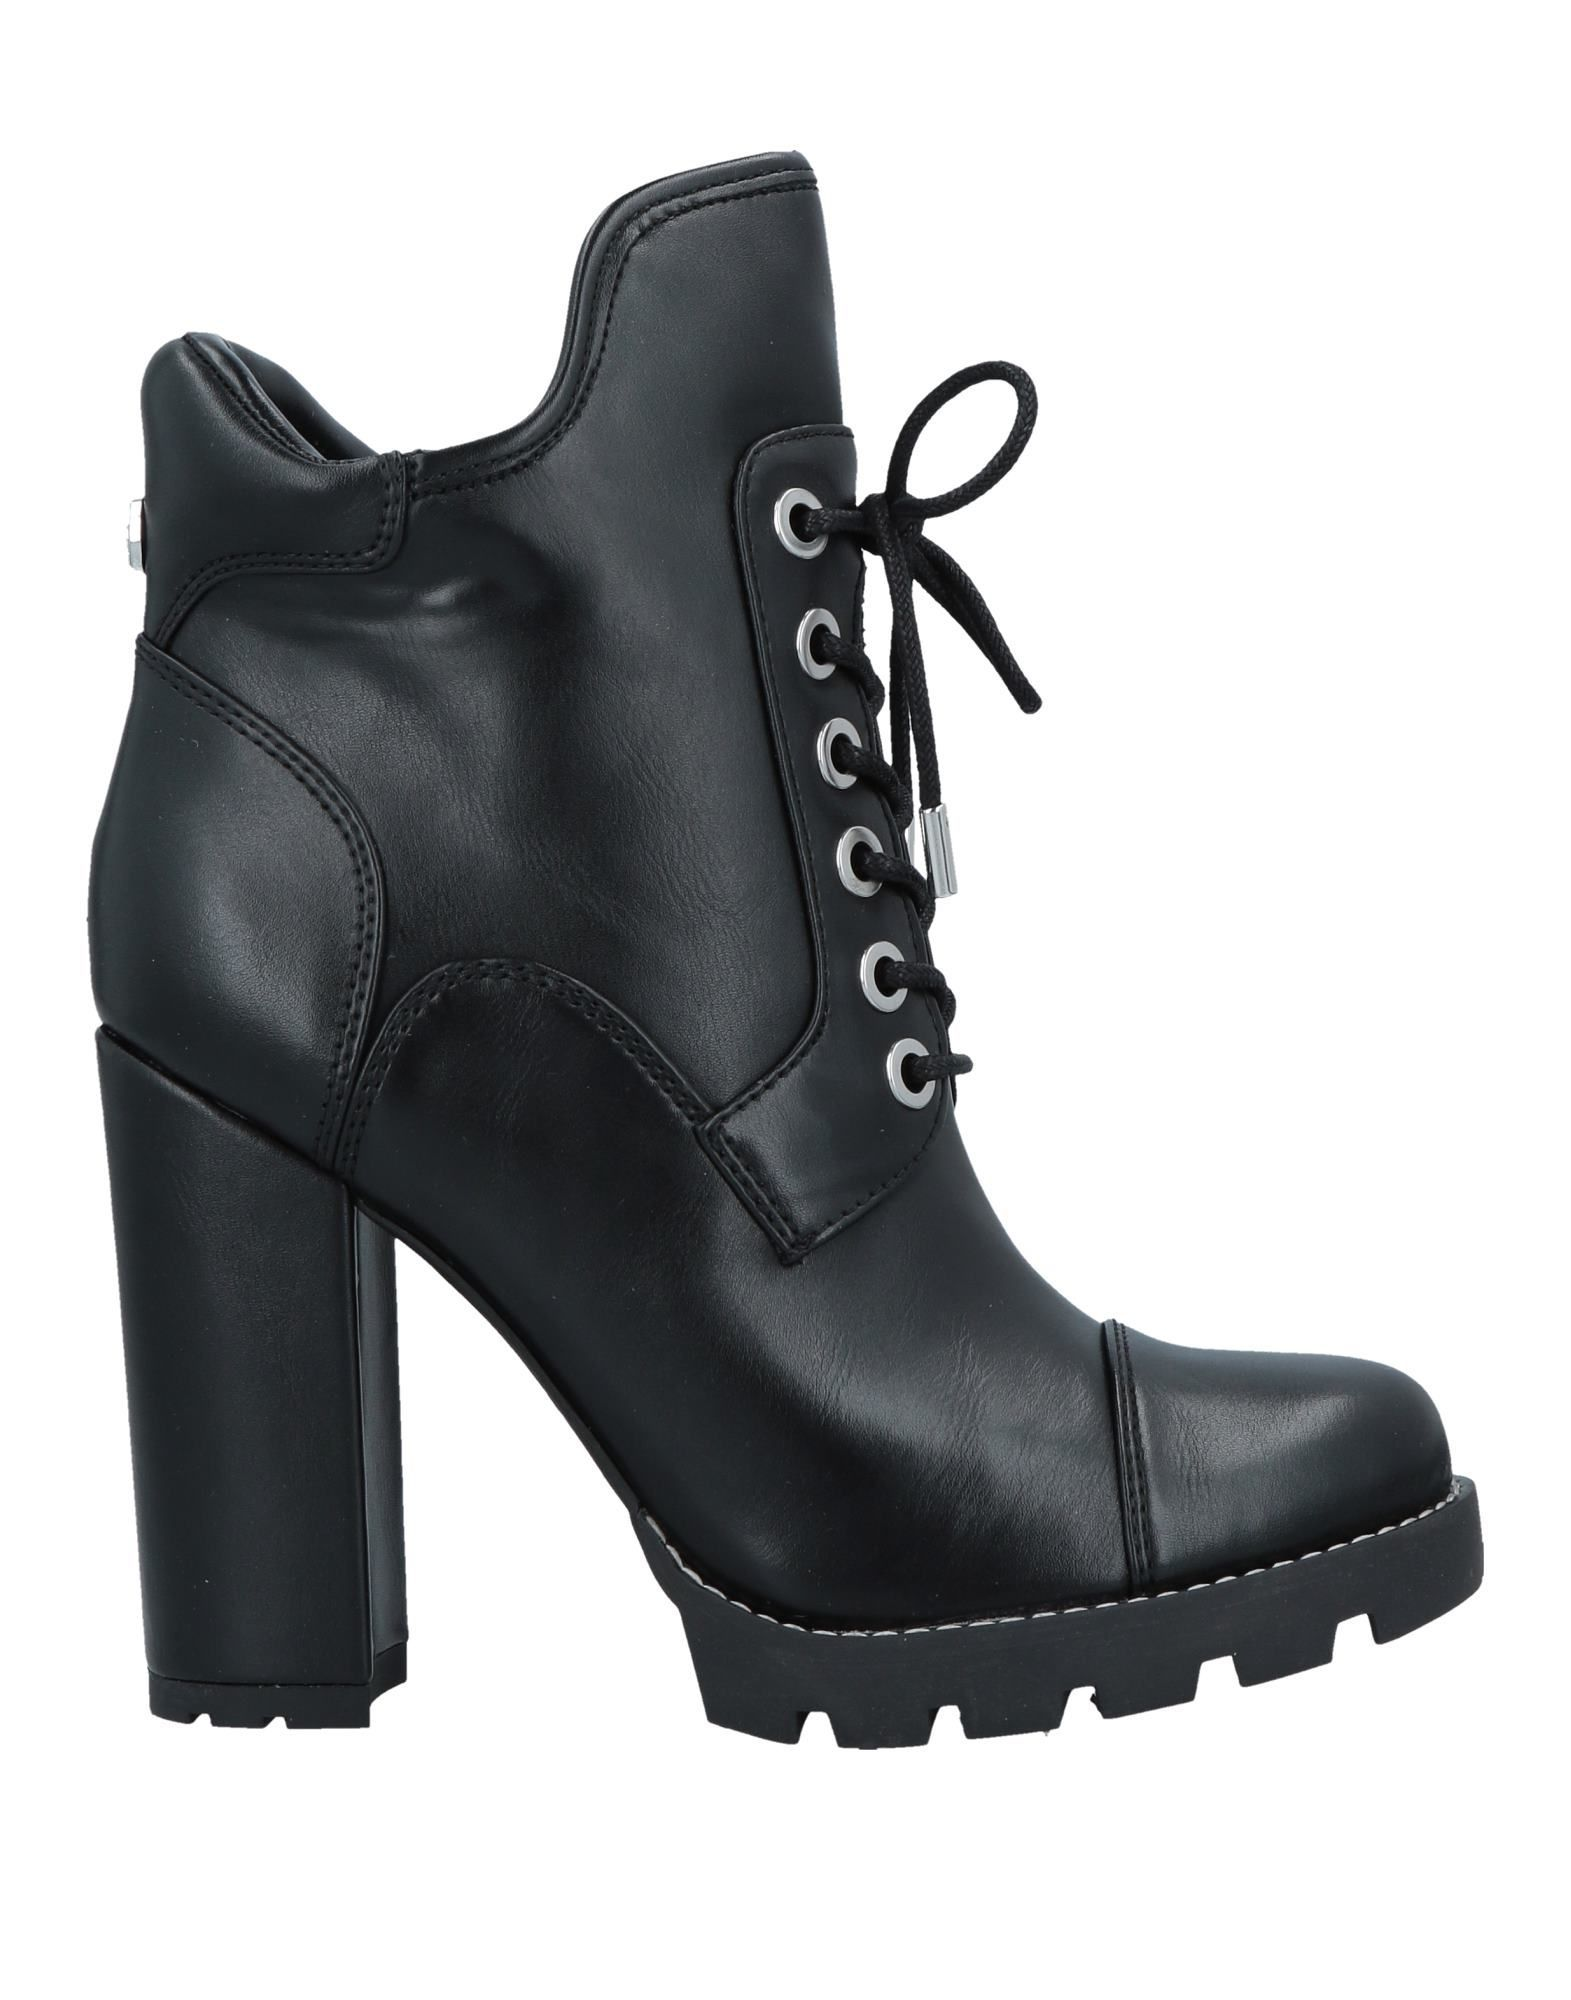 Guess Ankle Boot In Black Modesens Boots Black Ankle Boots Ankle Boot